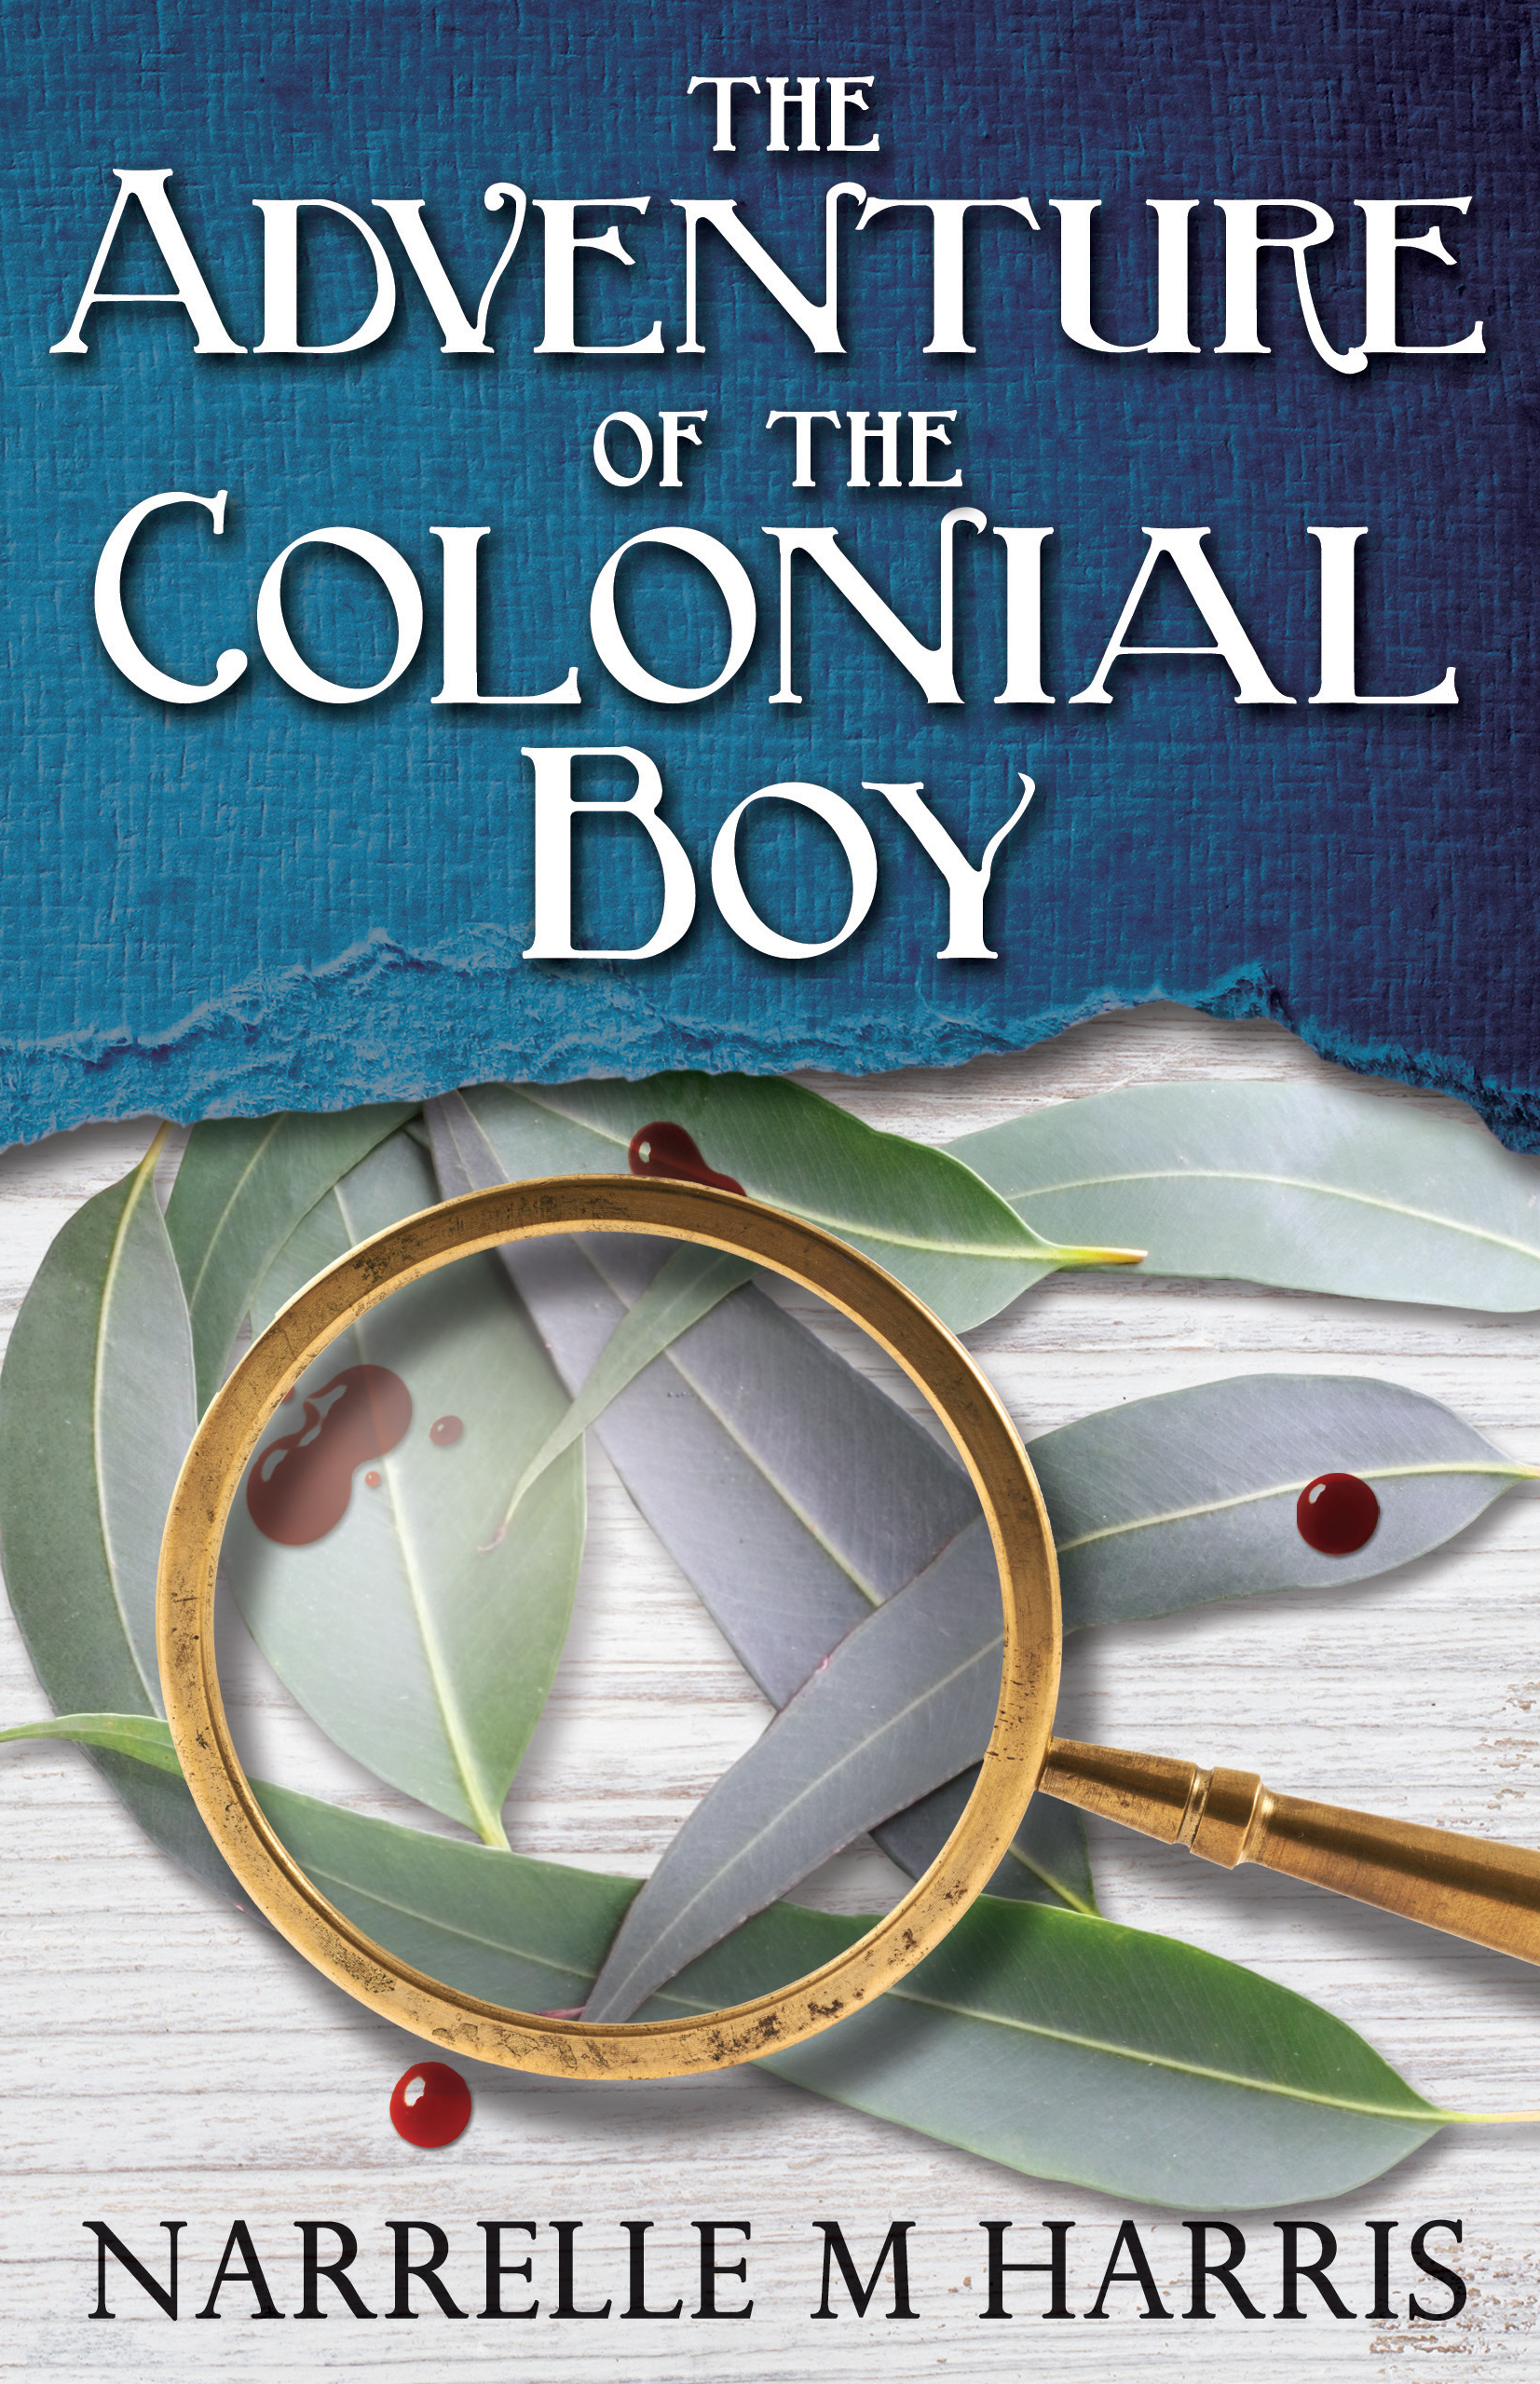 The Adventure of the Colonial Boy: Signed book